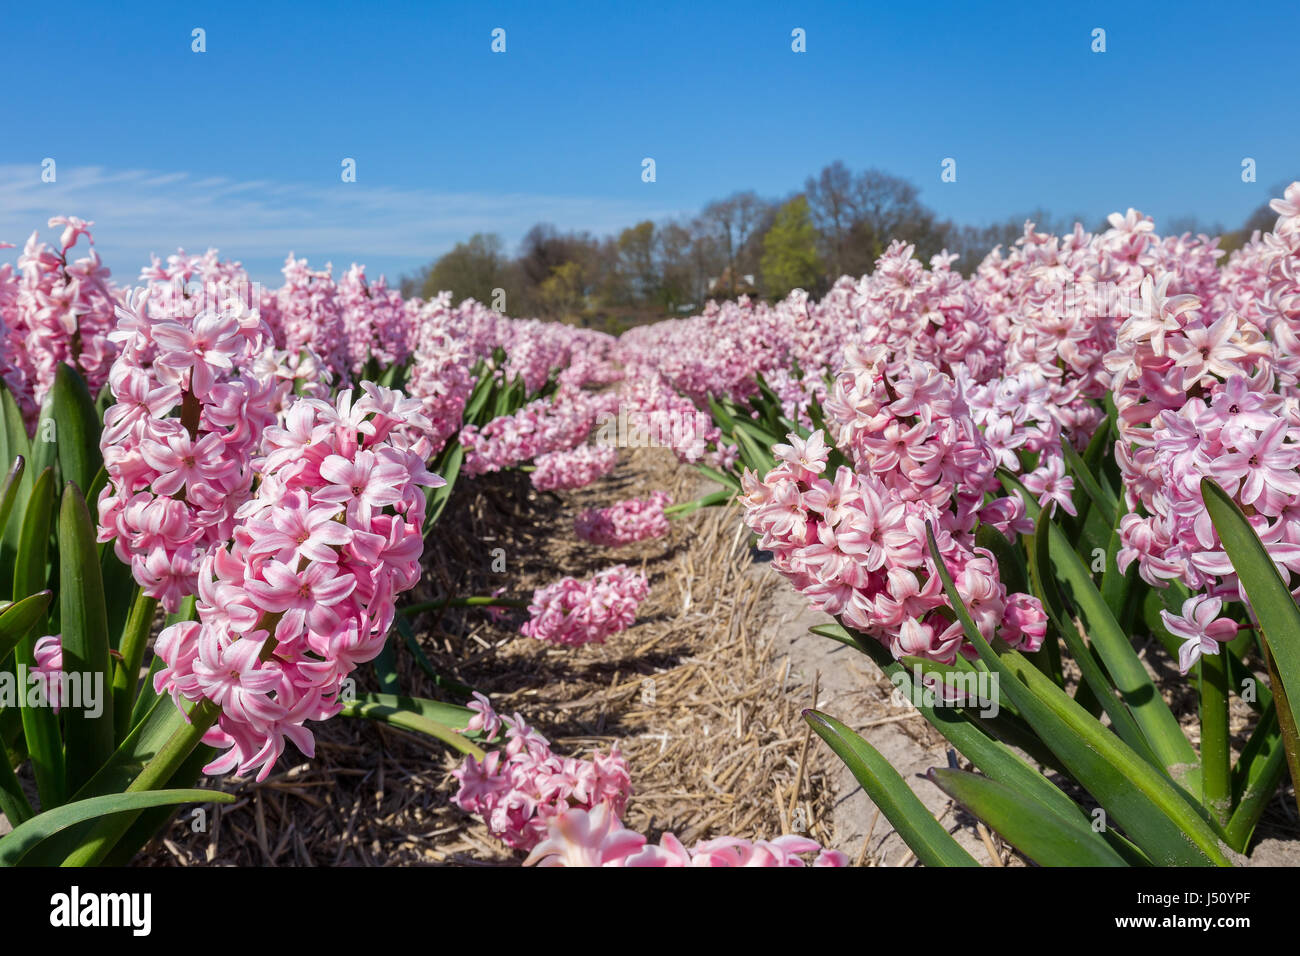 Flowers Field In Spring Season With Pink Hyacinths In Holland Stock